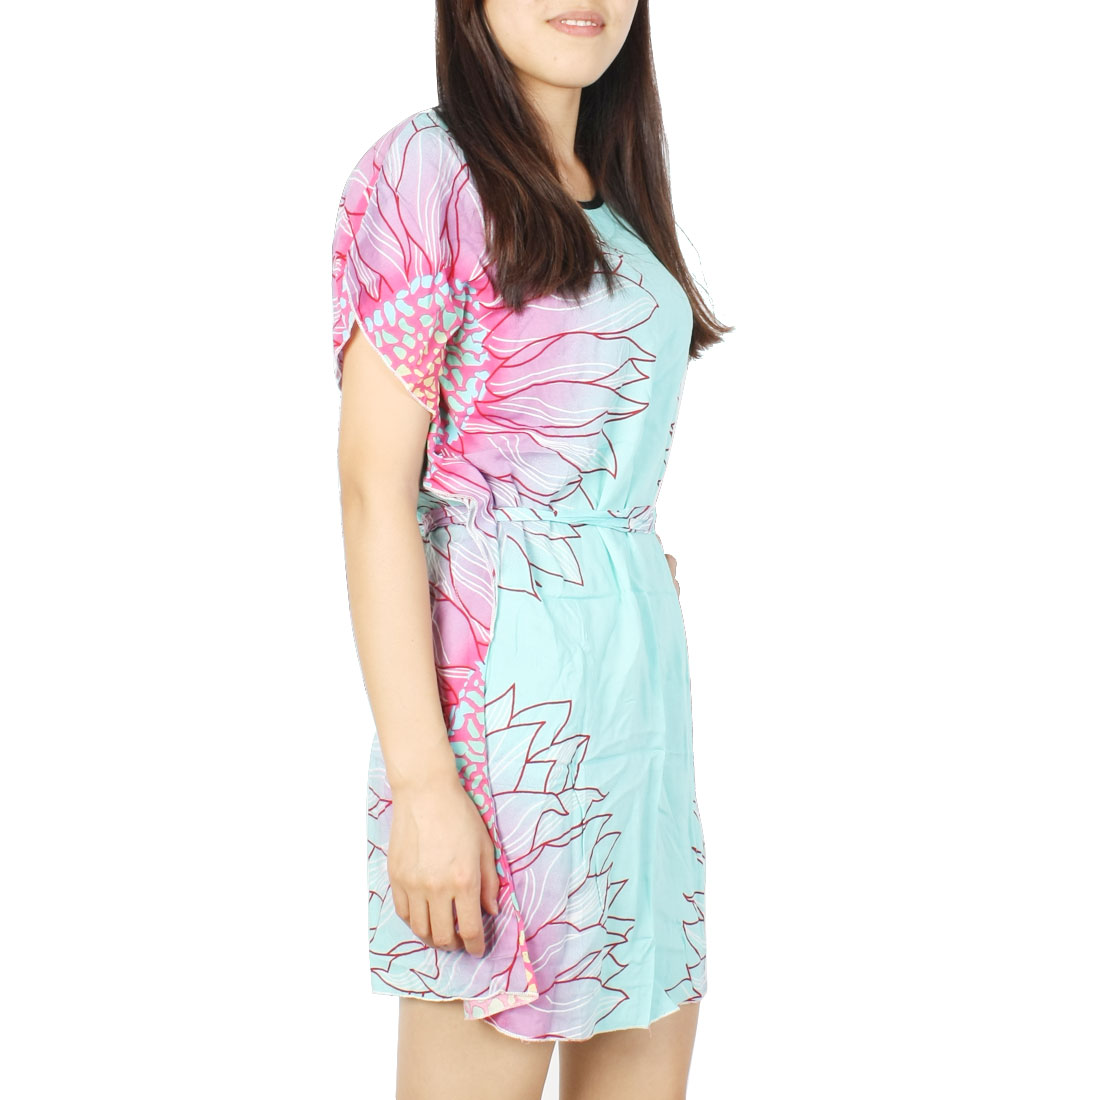 Ladies Flower Pattern Round Neck Adjustable Strap Sleep Dress S Blue